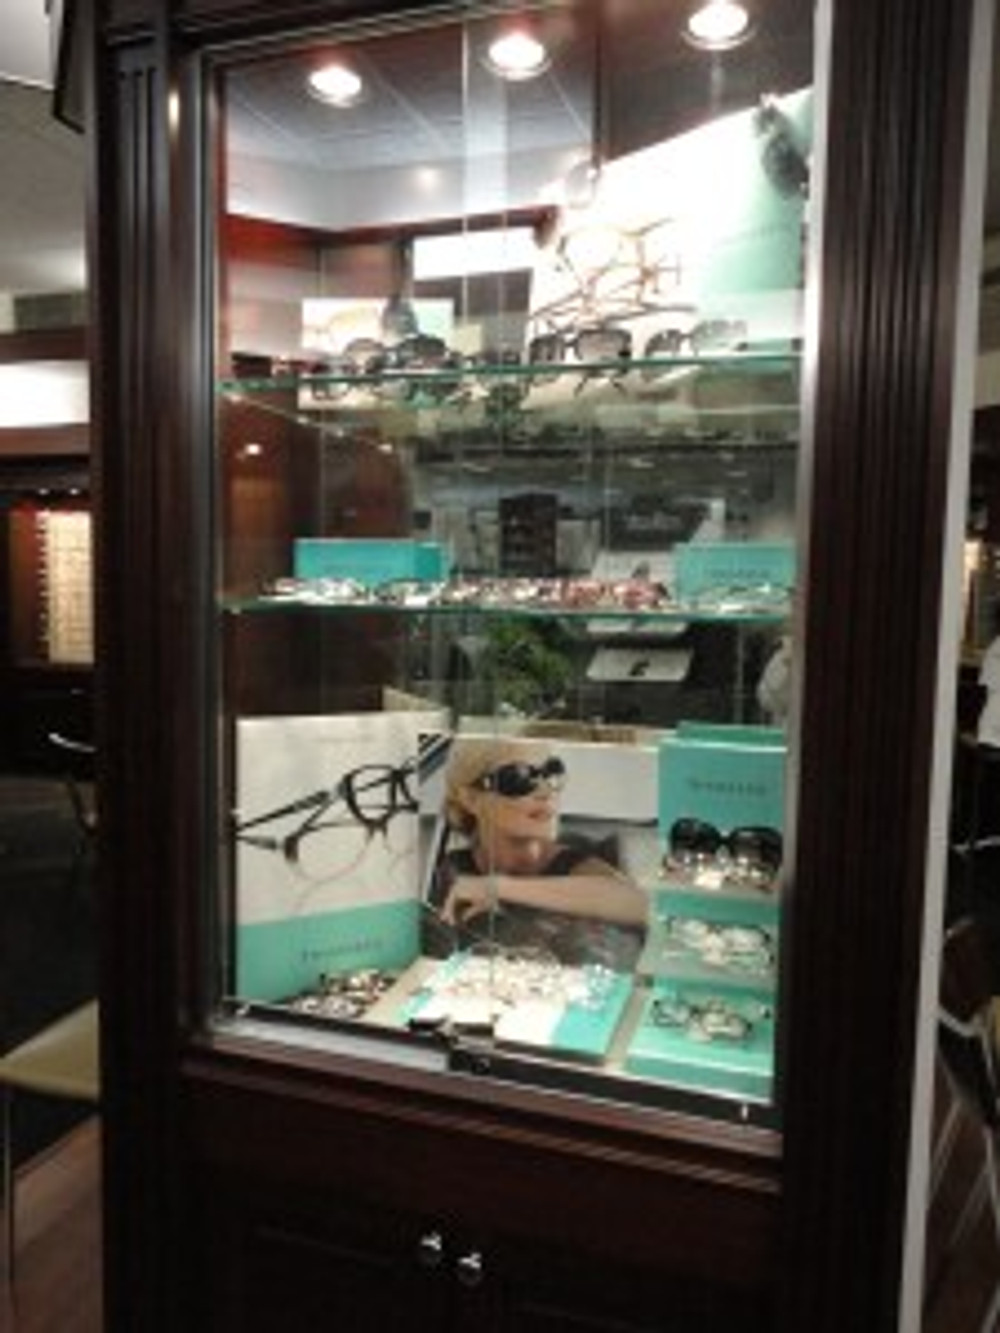 Yes, we get 40% even on the Tiffany frames